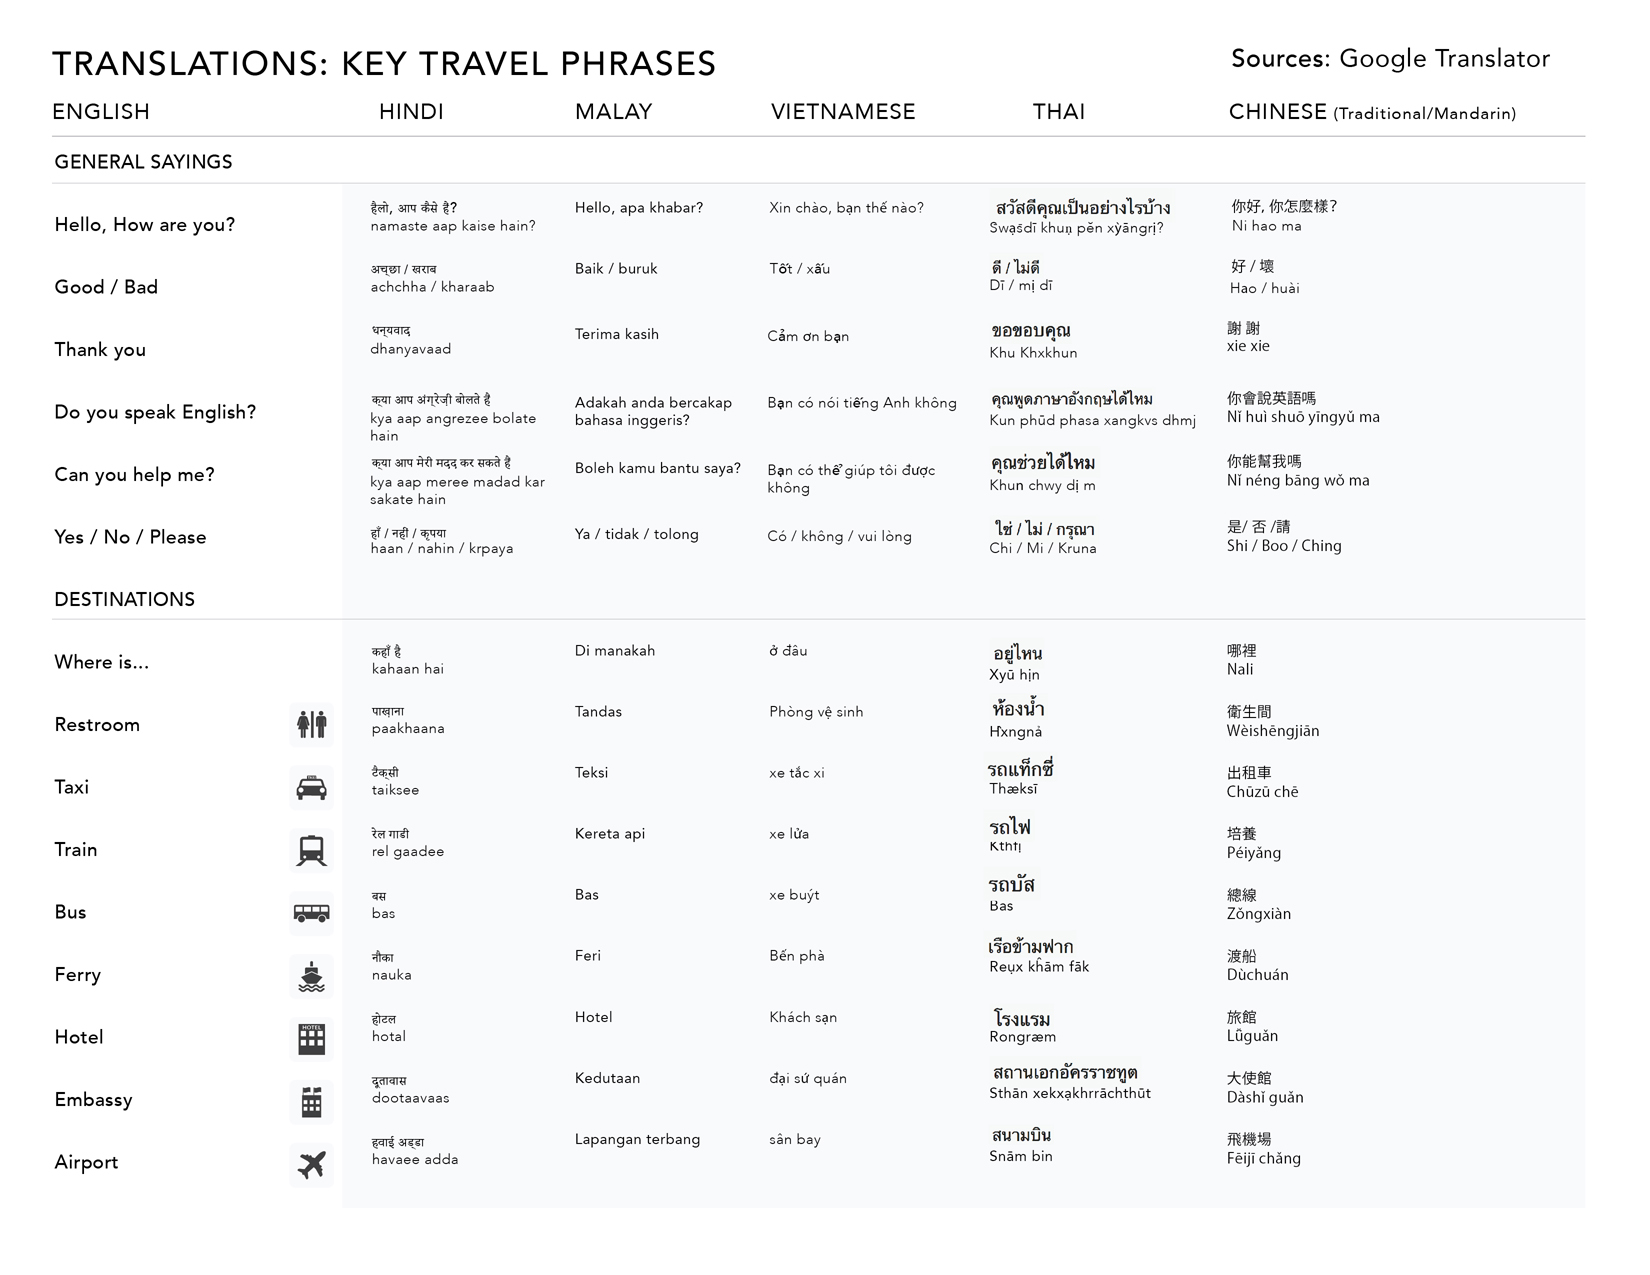 Travel translations, key phrases for Asia, page 1